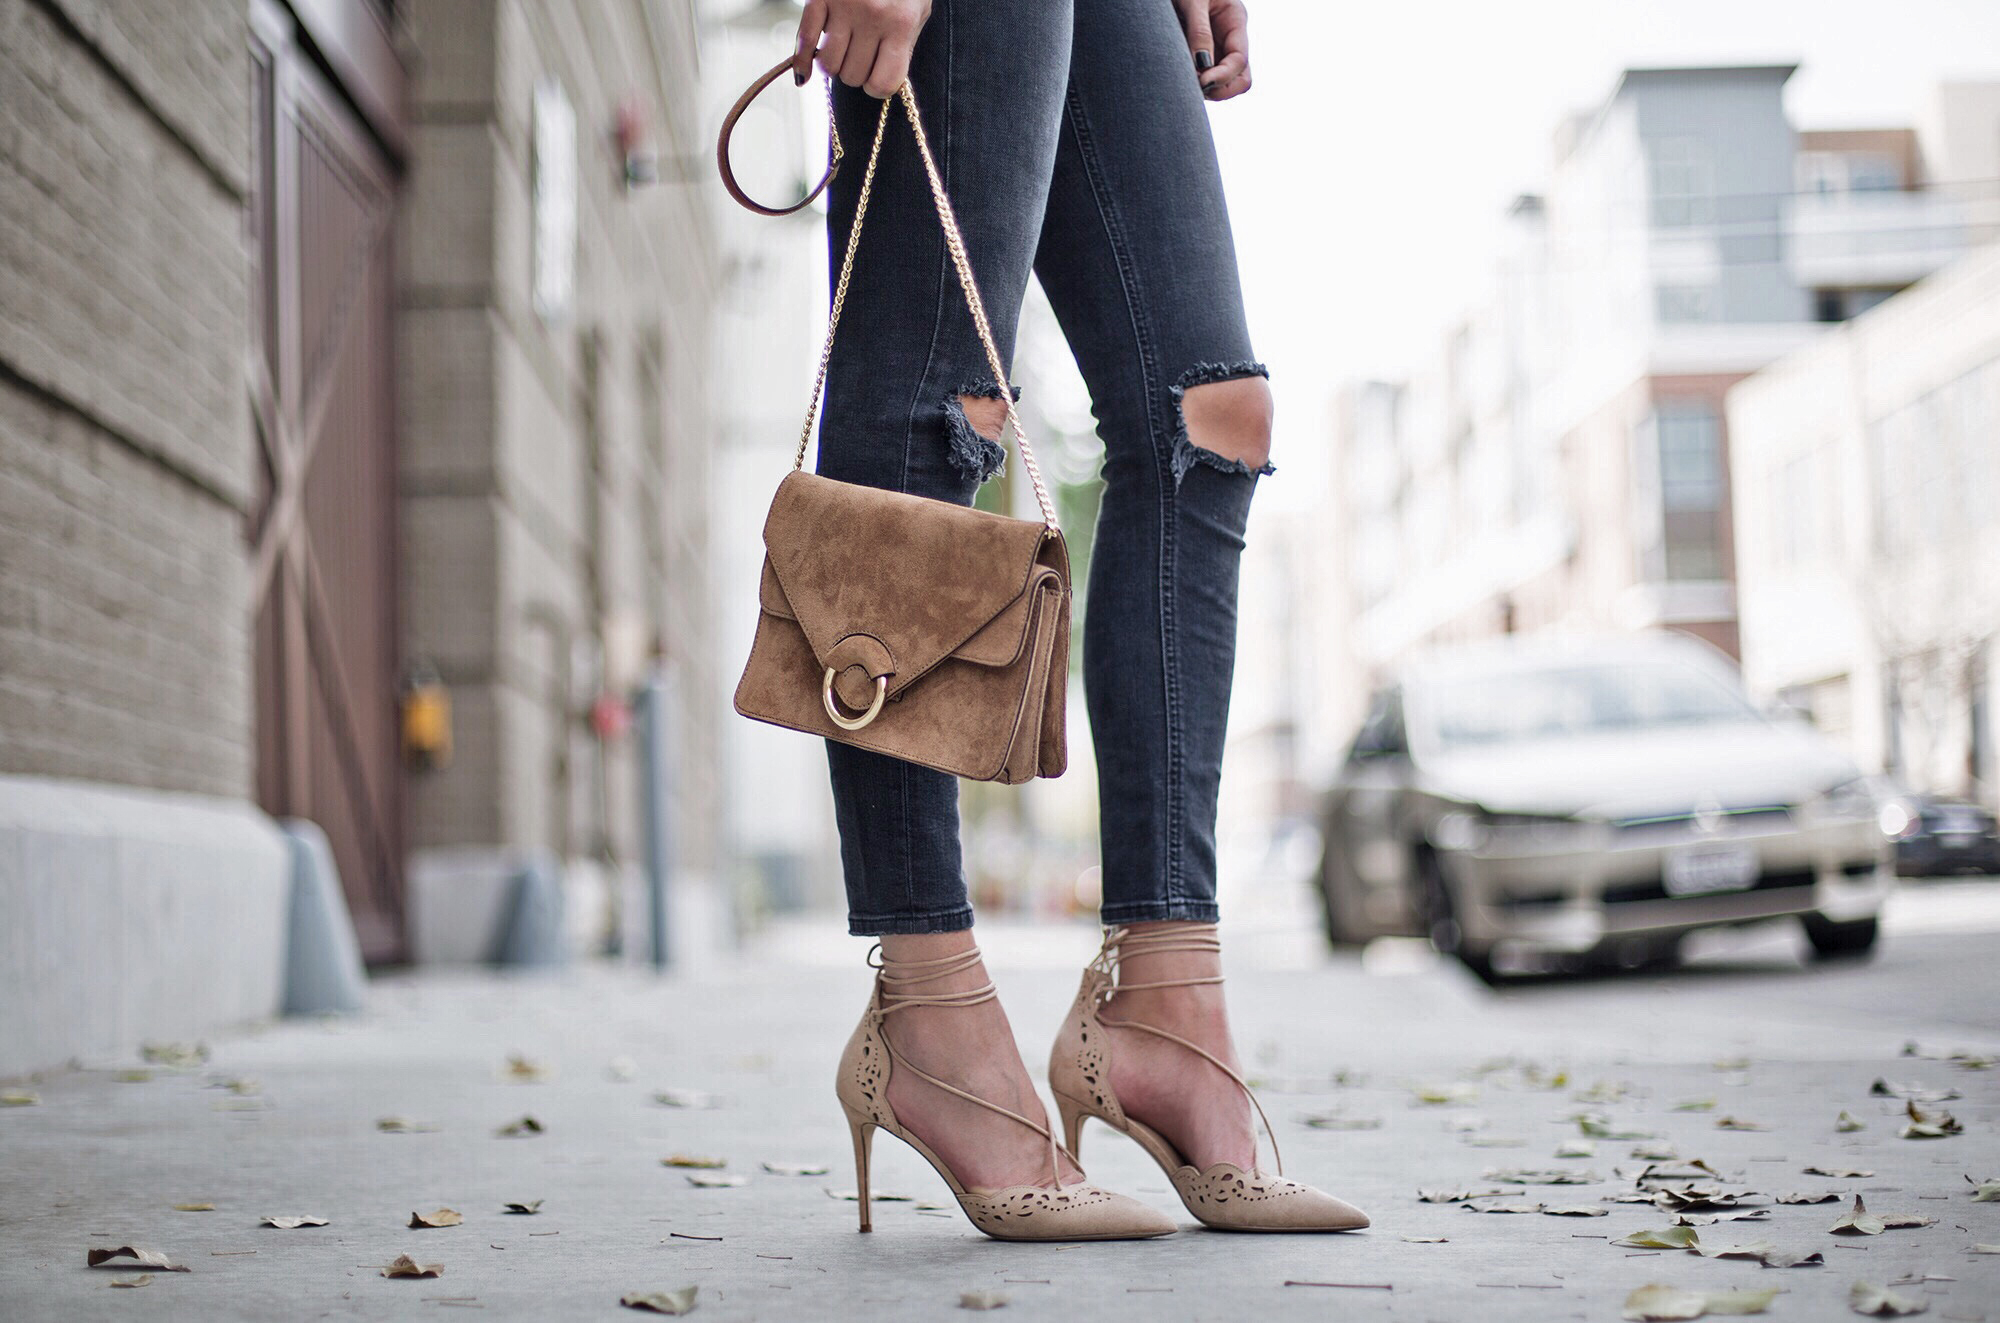 Tan Suede Crossbody Bag Lace Up Nude Heels Blogger Style